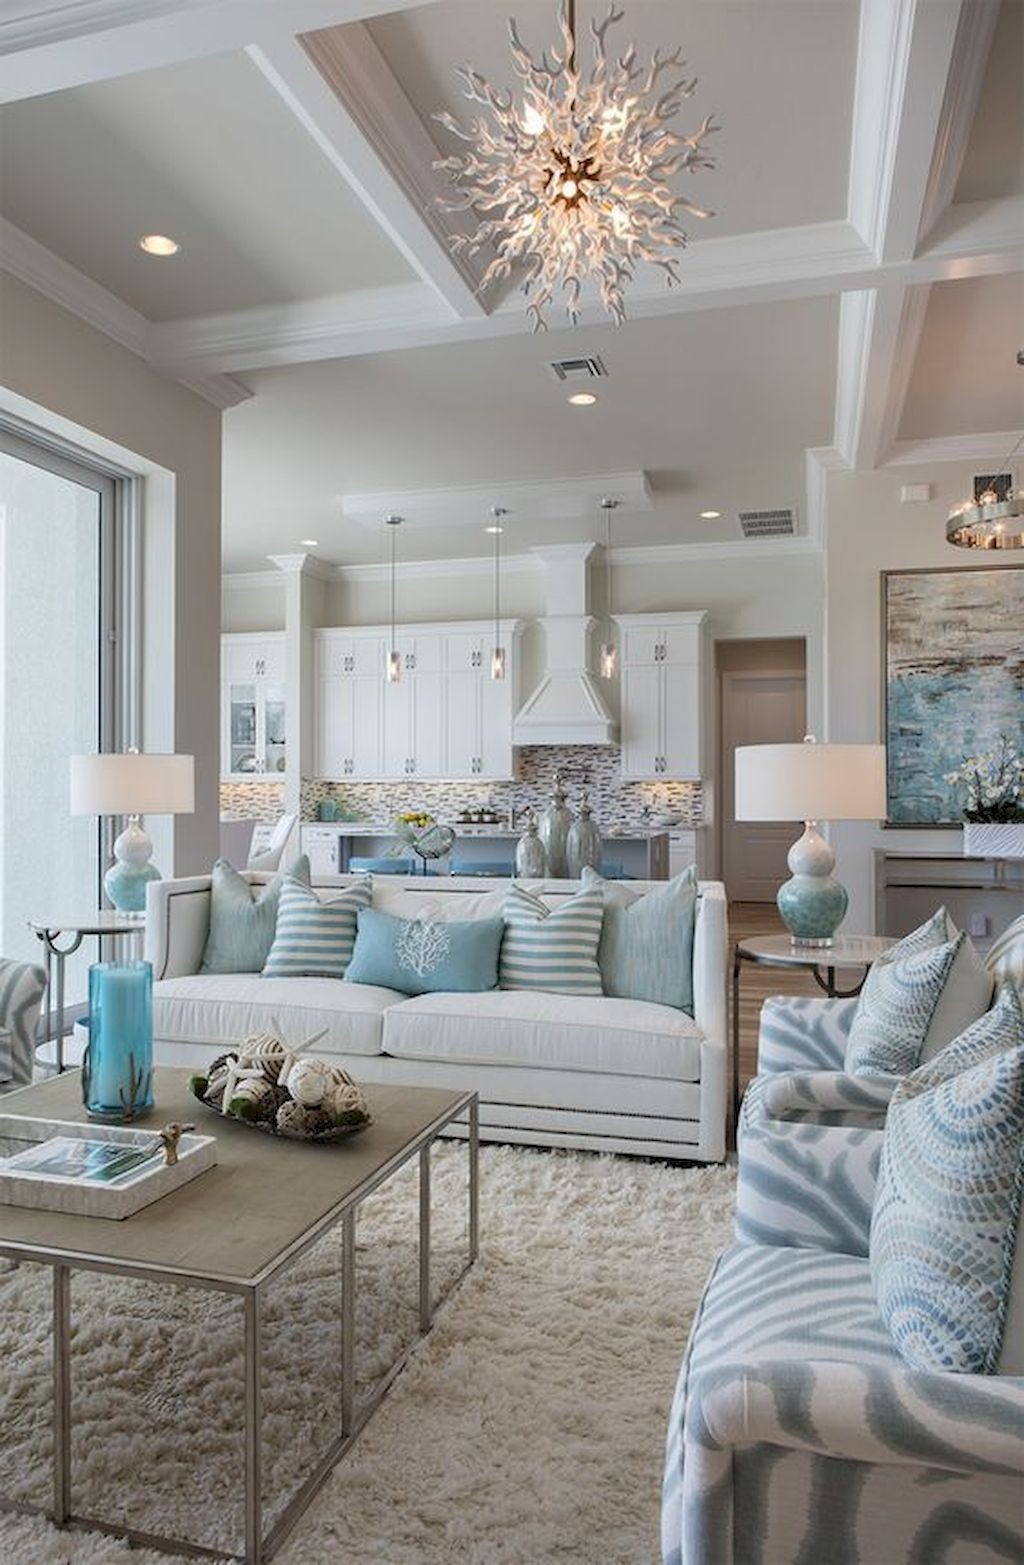 99 Cozy and Stylish Coastal Living Room Decor Ideas